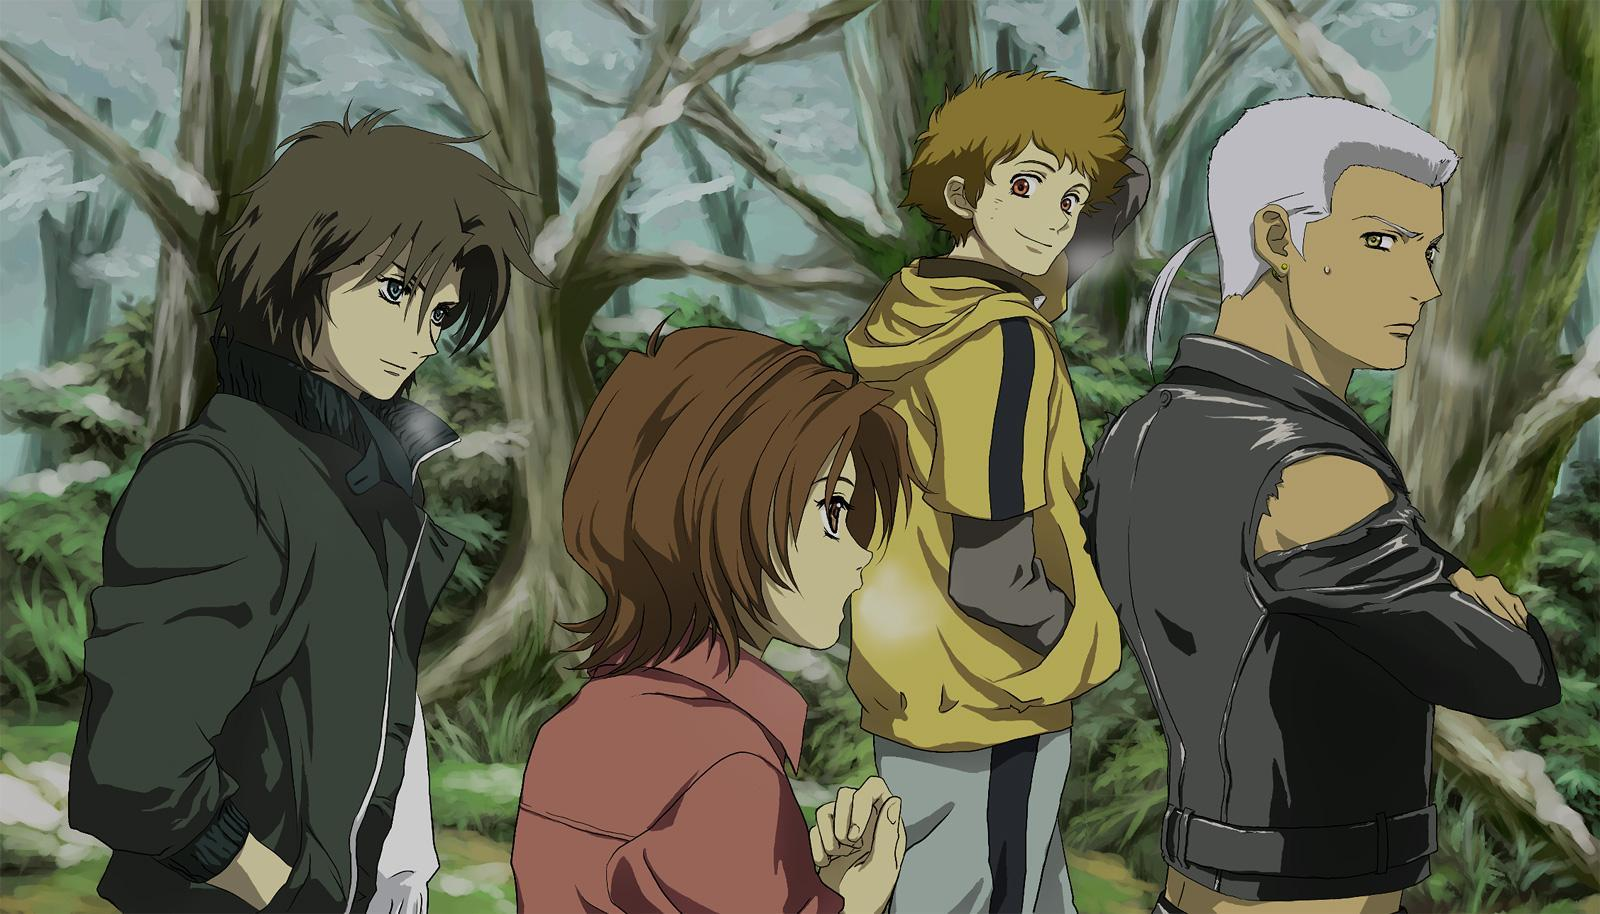 Philosophical anime similar to To Your Eternity, Wolf's Rain